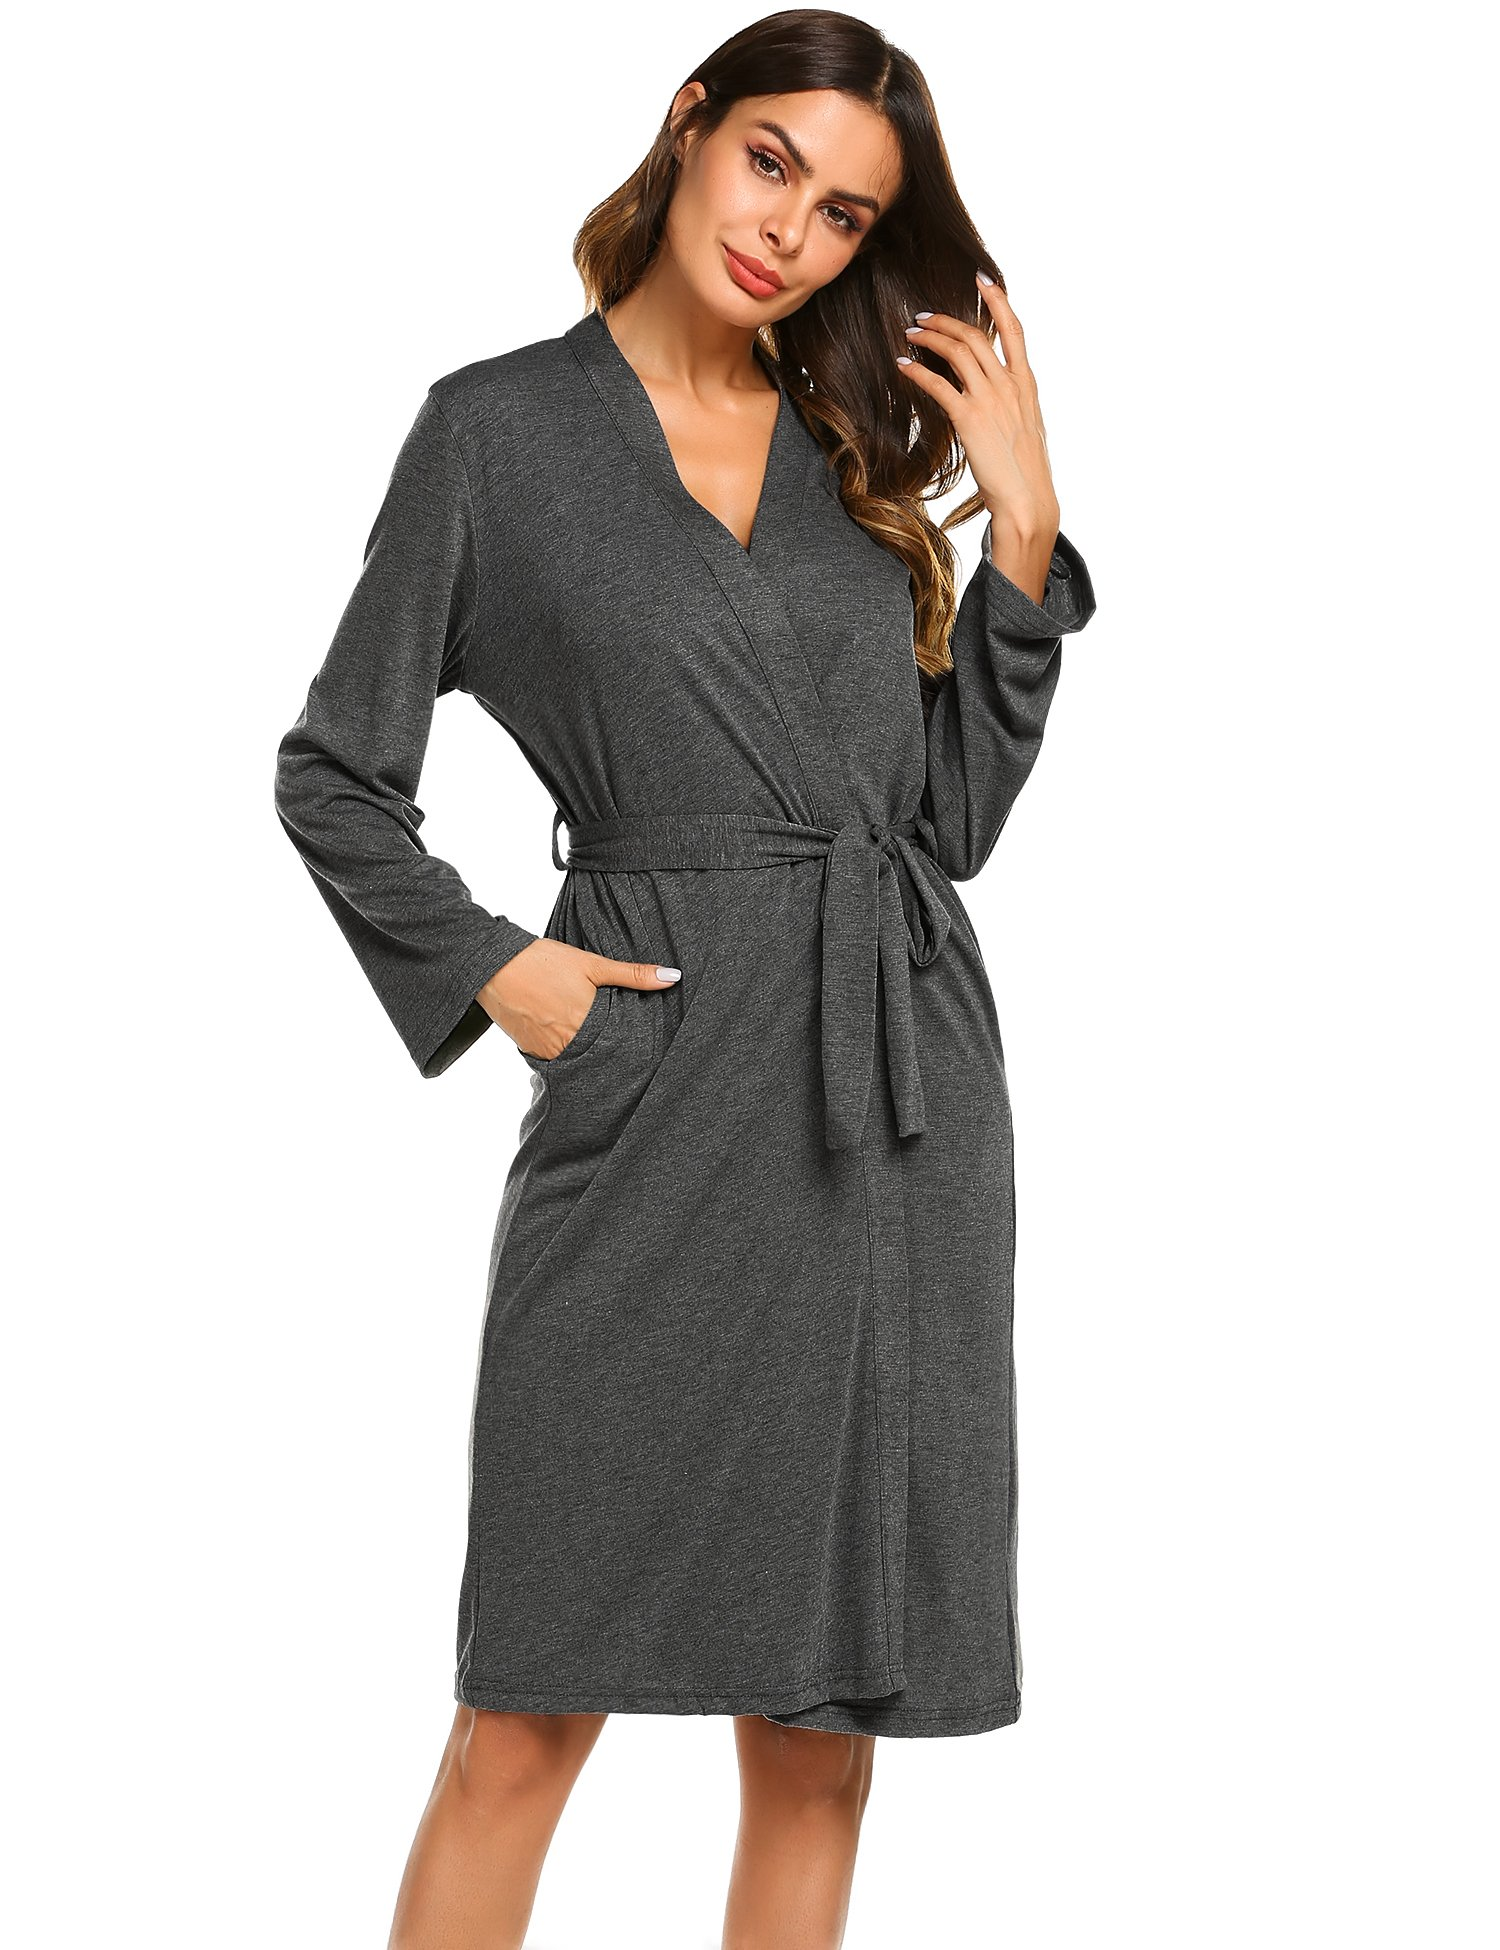 Ekouaer Soft Long Robe Women Cotton Sleepwear Bath Robes (Grey, Small)